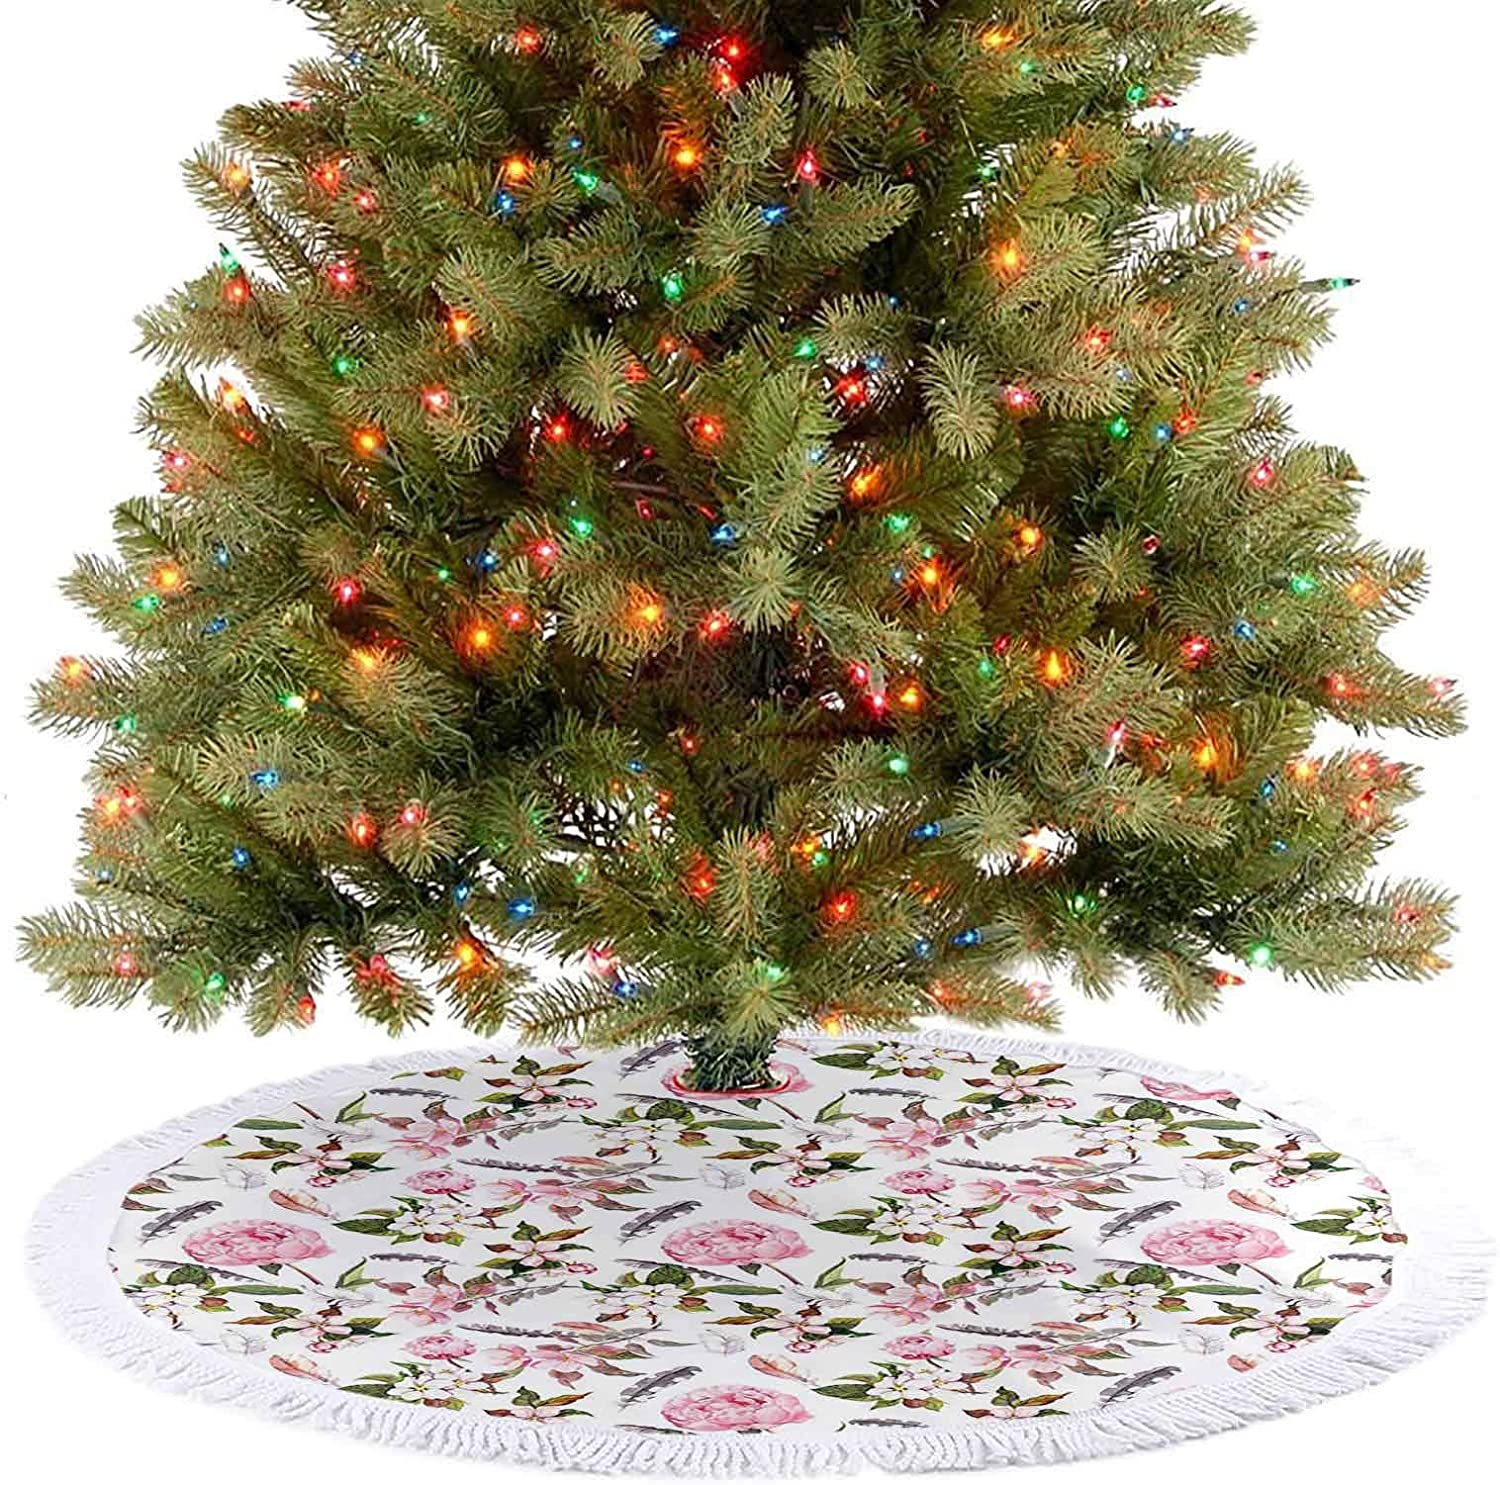 Adorise Luxury Christmas Tree Skirt Rose and Cherry Flowers Blossoms Feathers Shabby Classical Botanic Retro Image Traditional Christmas Tree Mat A Contemporary Look and Appeal - 48 Inch